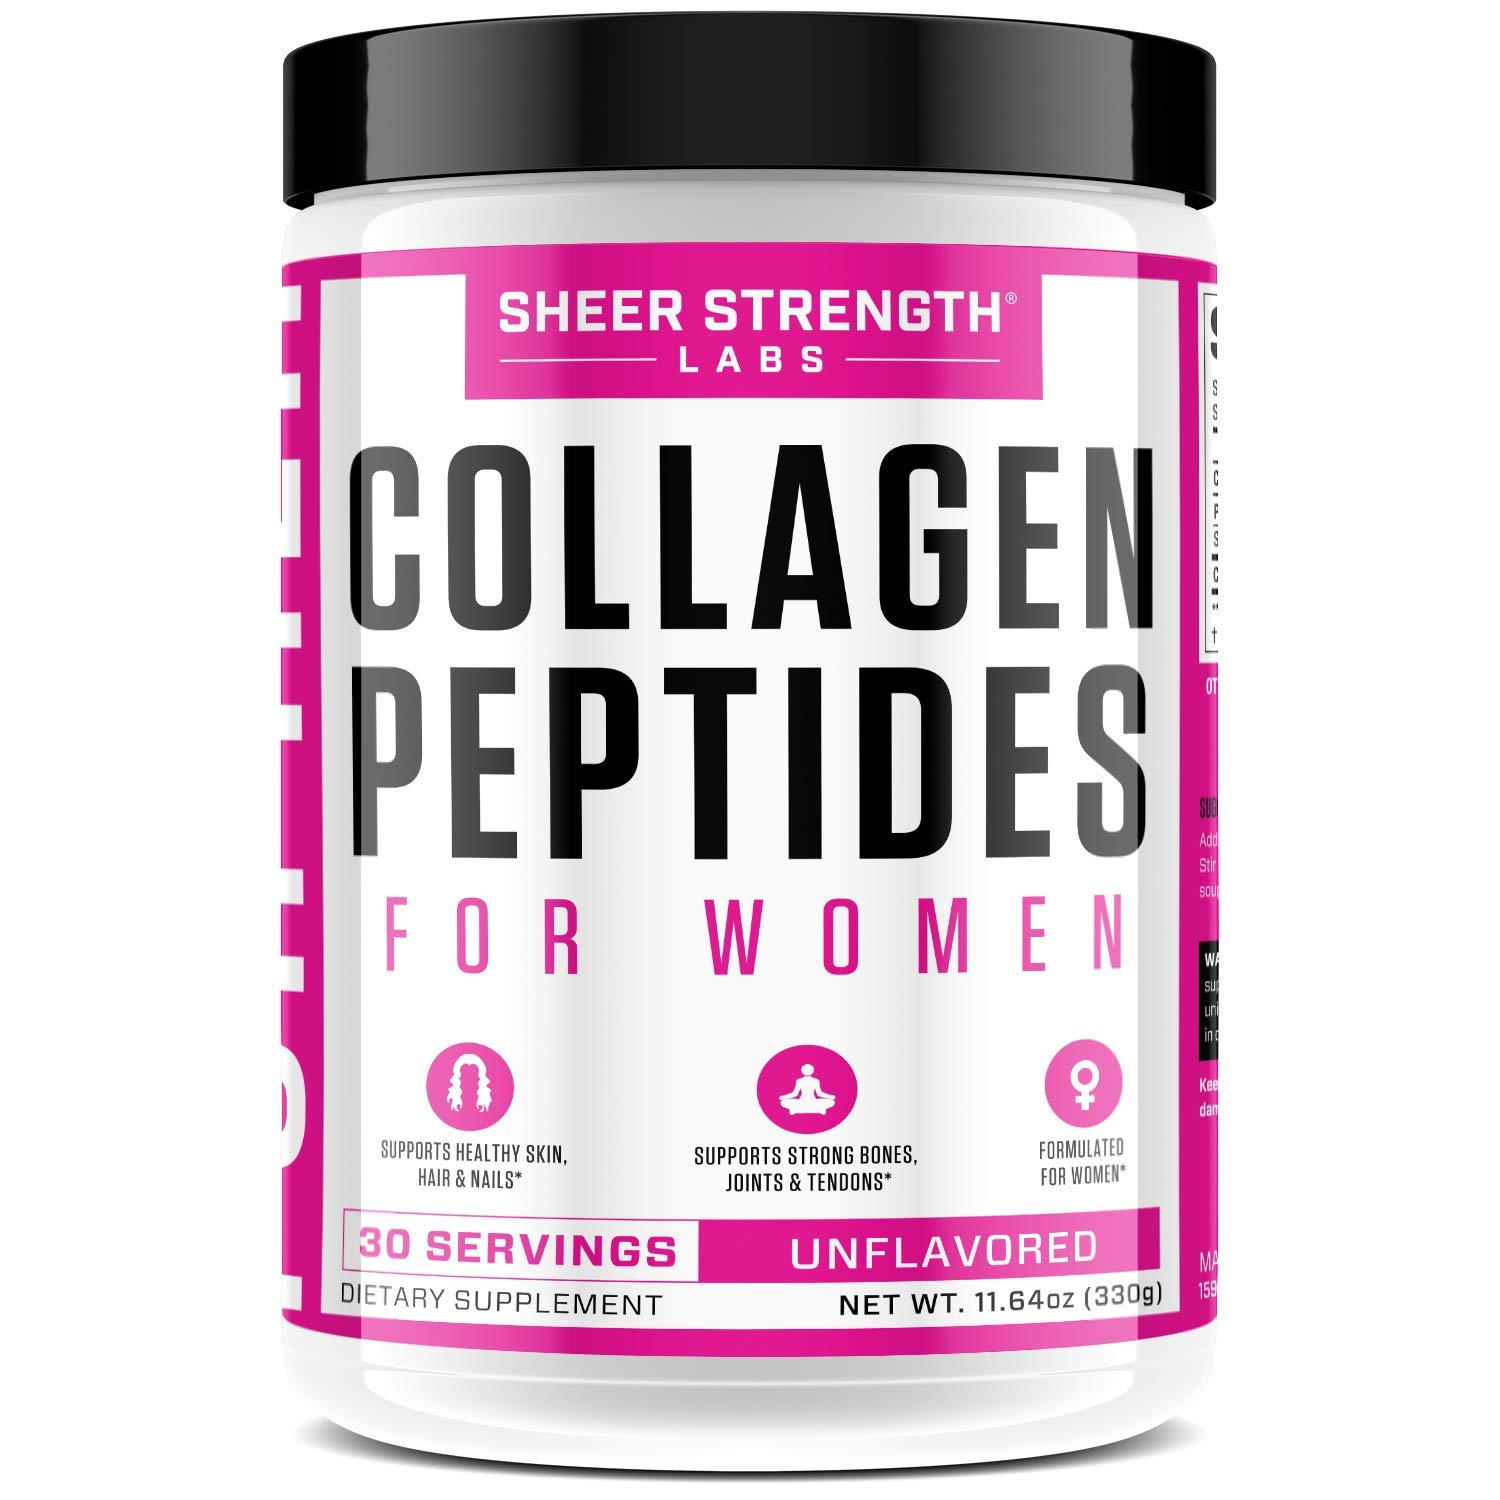 Collagen Peptides Powder - Hydrolyzed Collagen Powder Grass Fed for Healthy Hair Skin Nails and Joints   Paleo Friendly Keto Protein Powder Non-GMO and Gluten Free   Sheer Strength 330g Unflavored